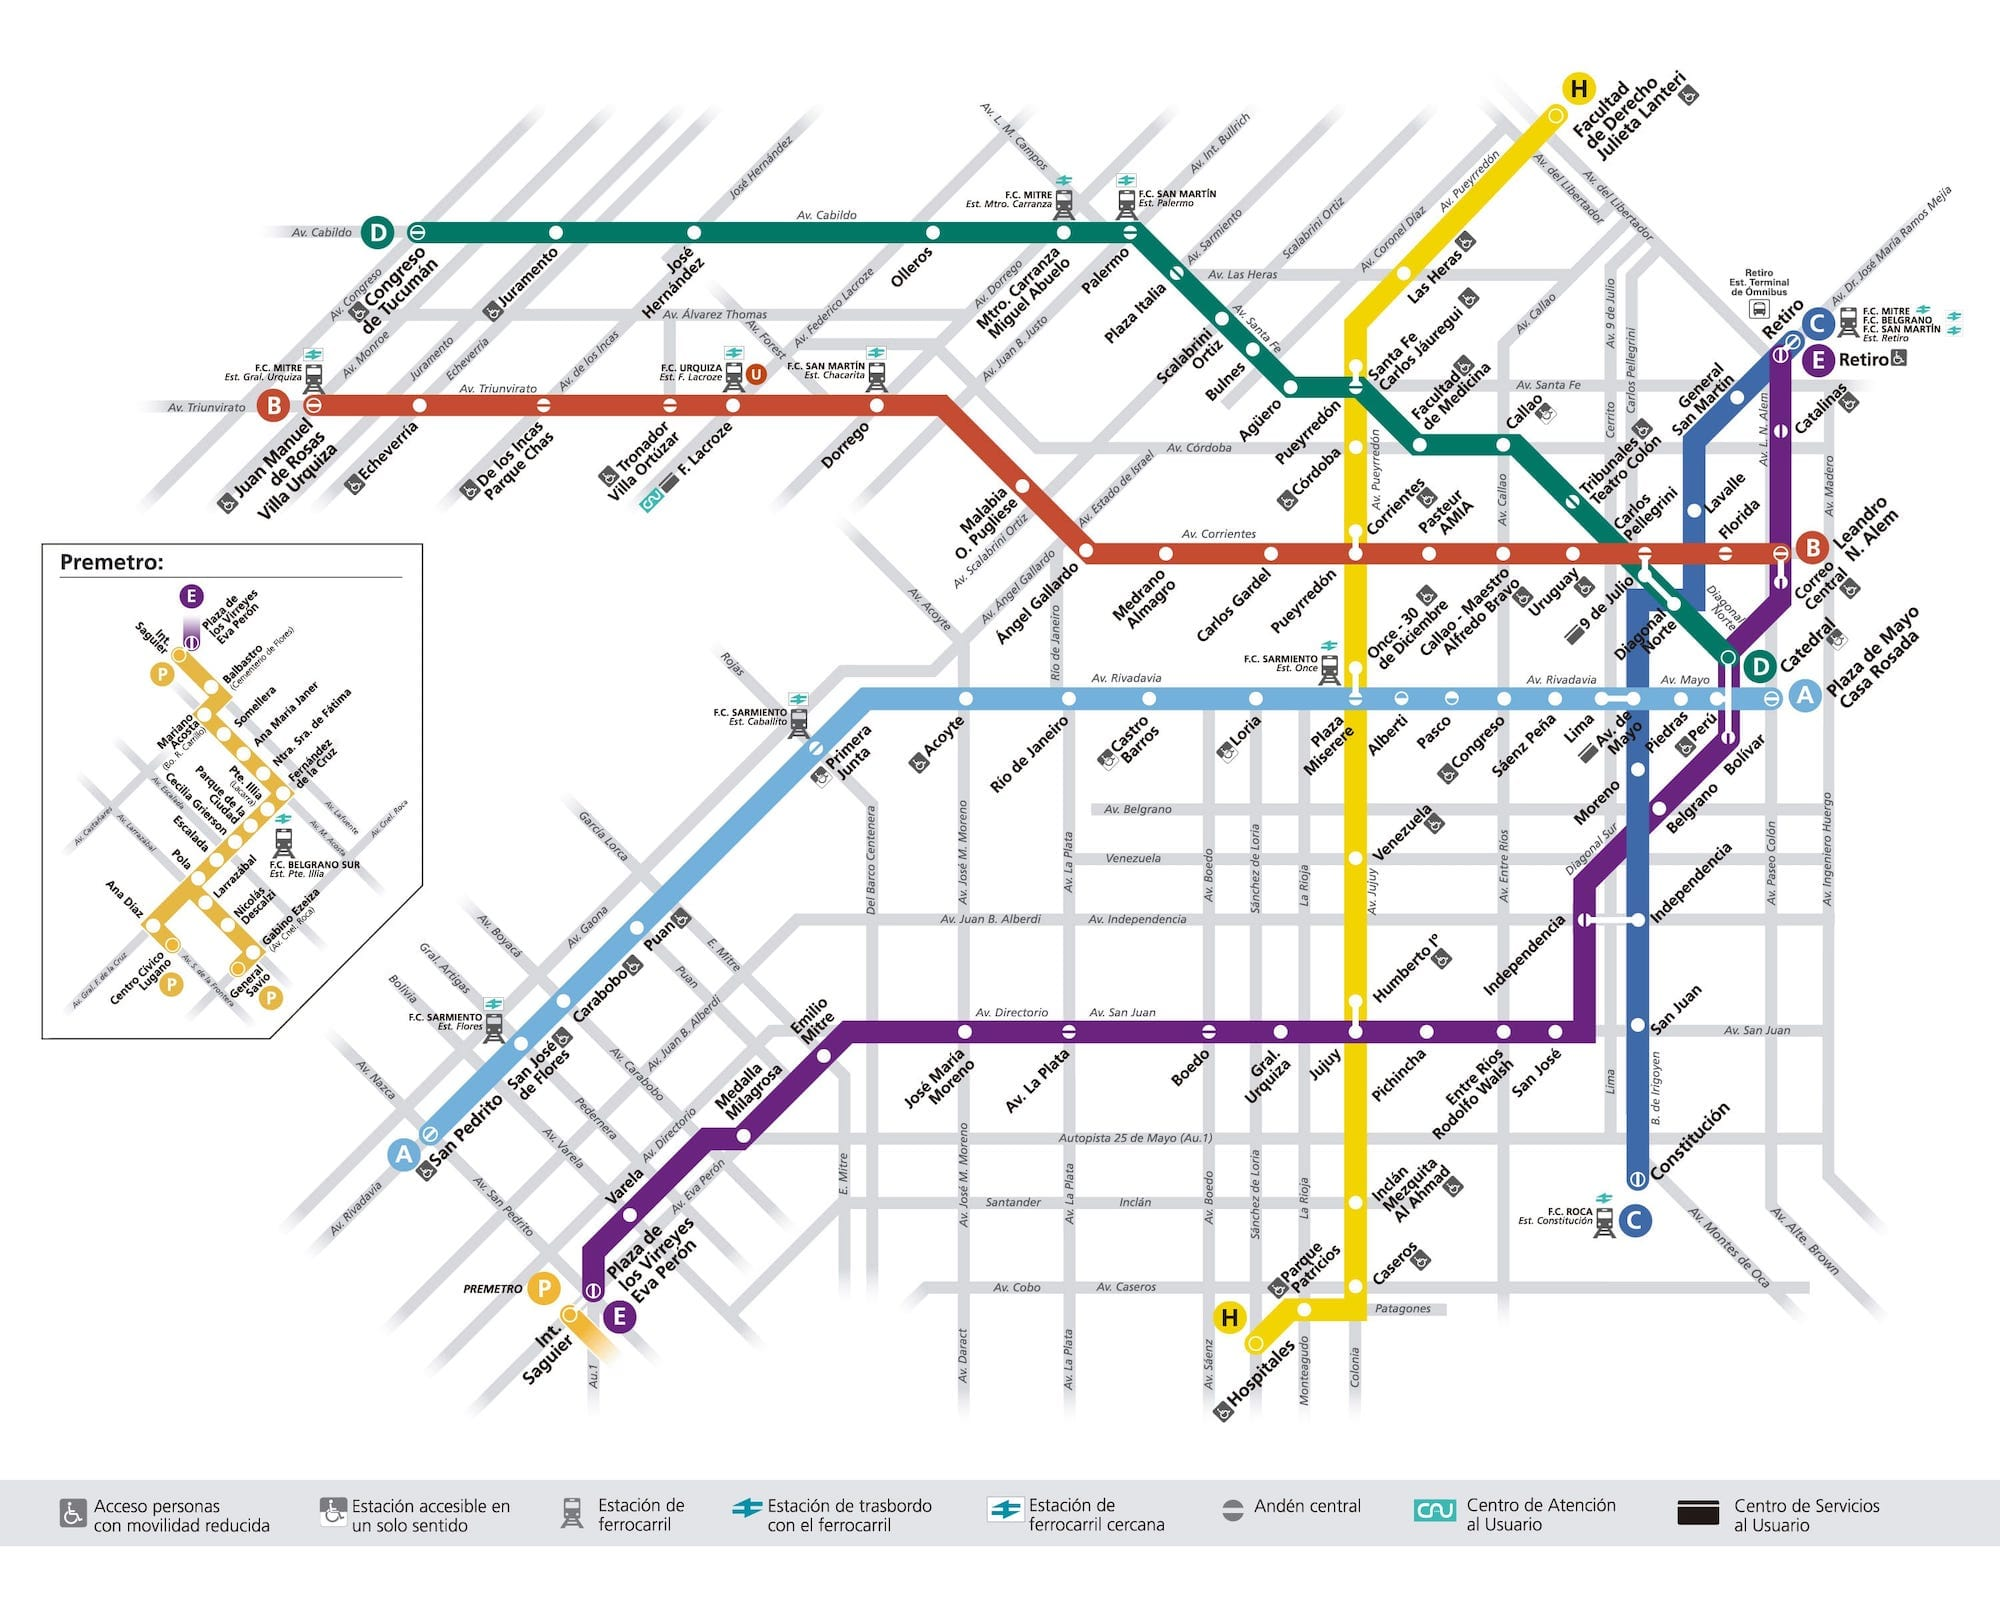 Subway map of Buenos Aires Public Transport